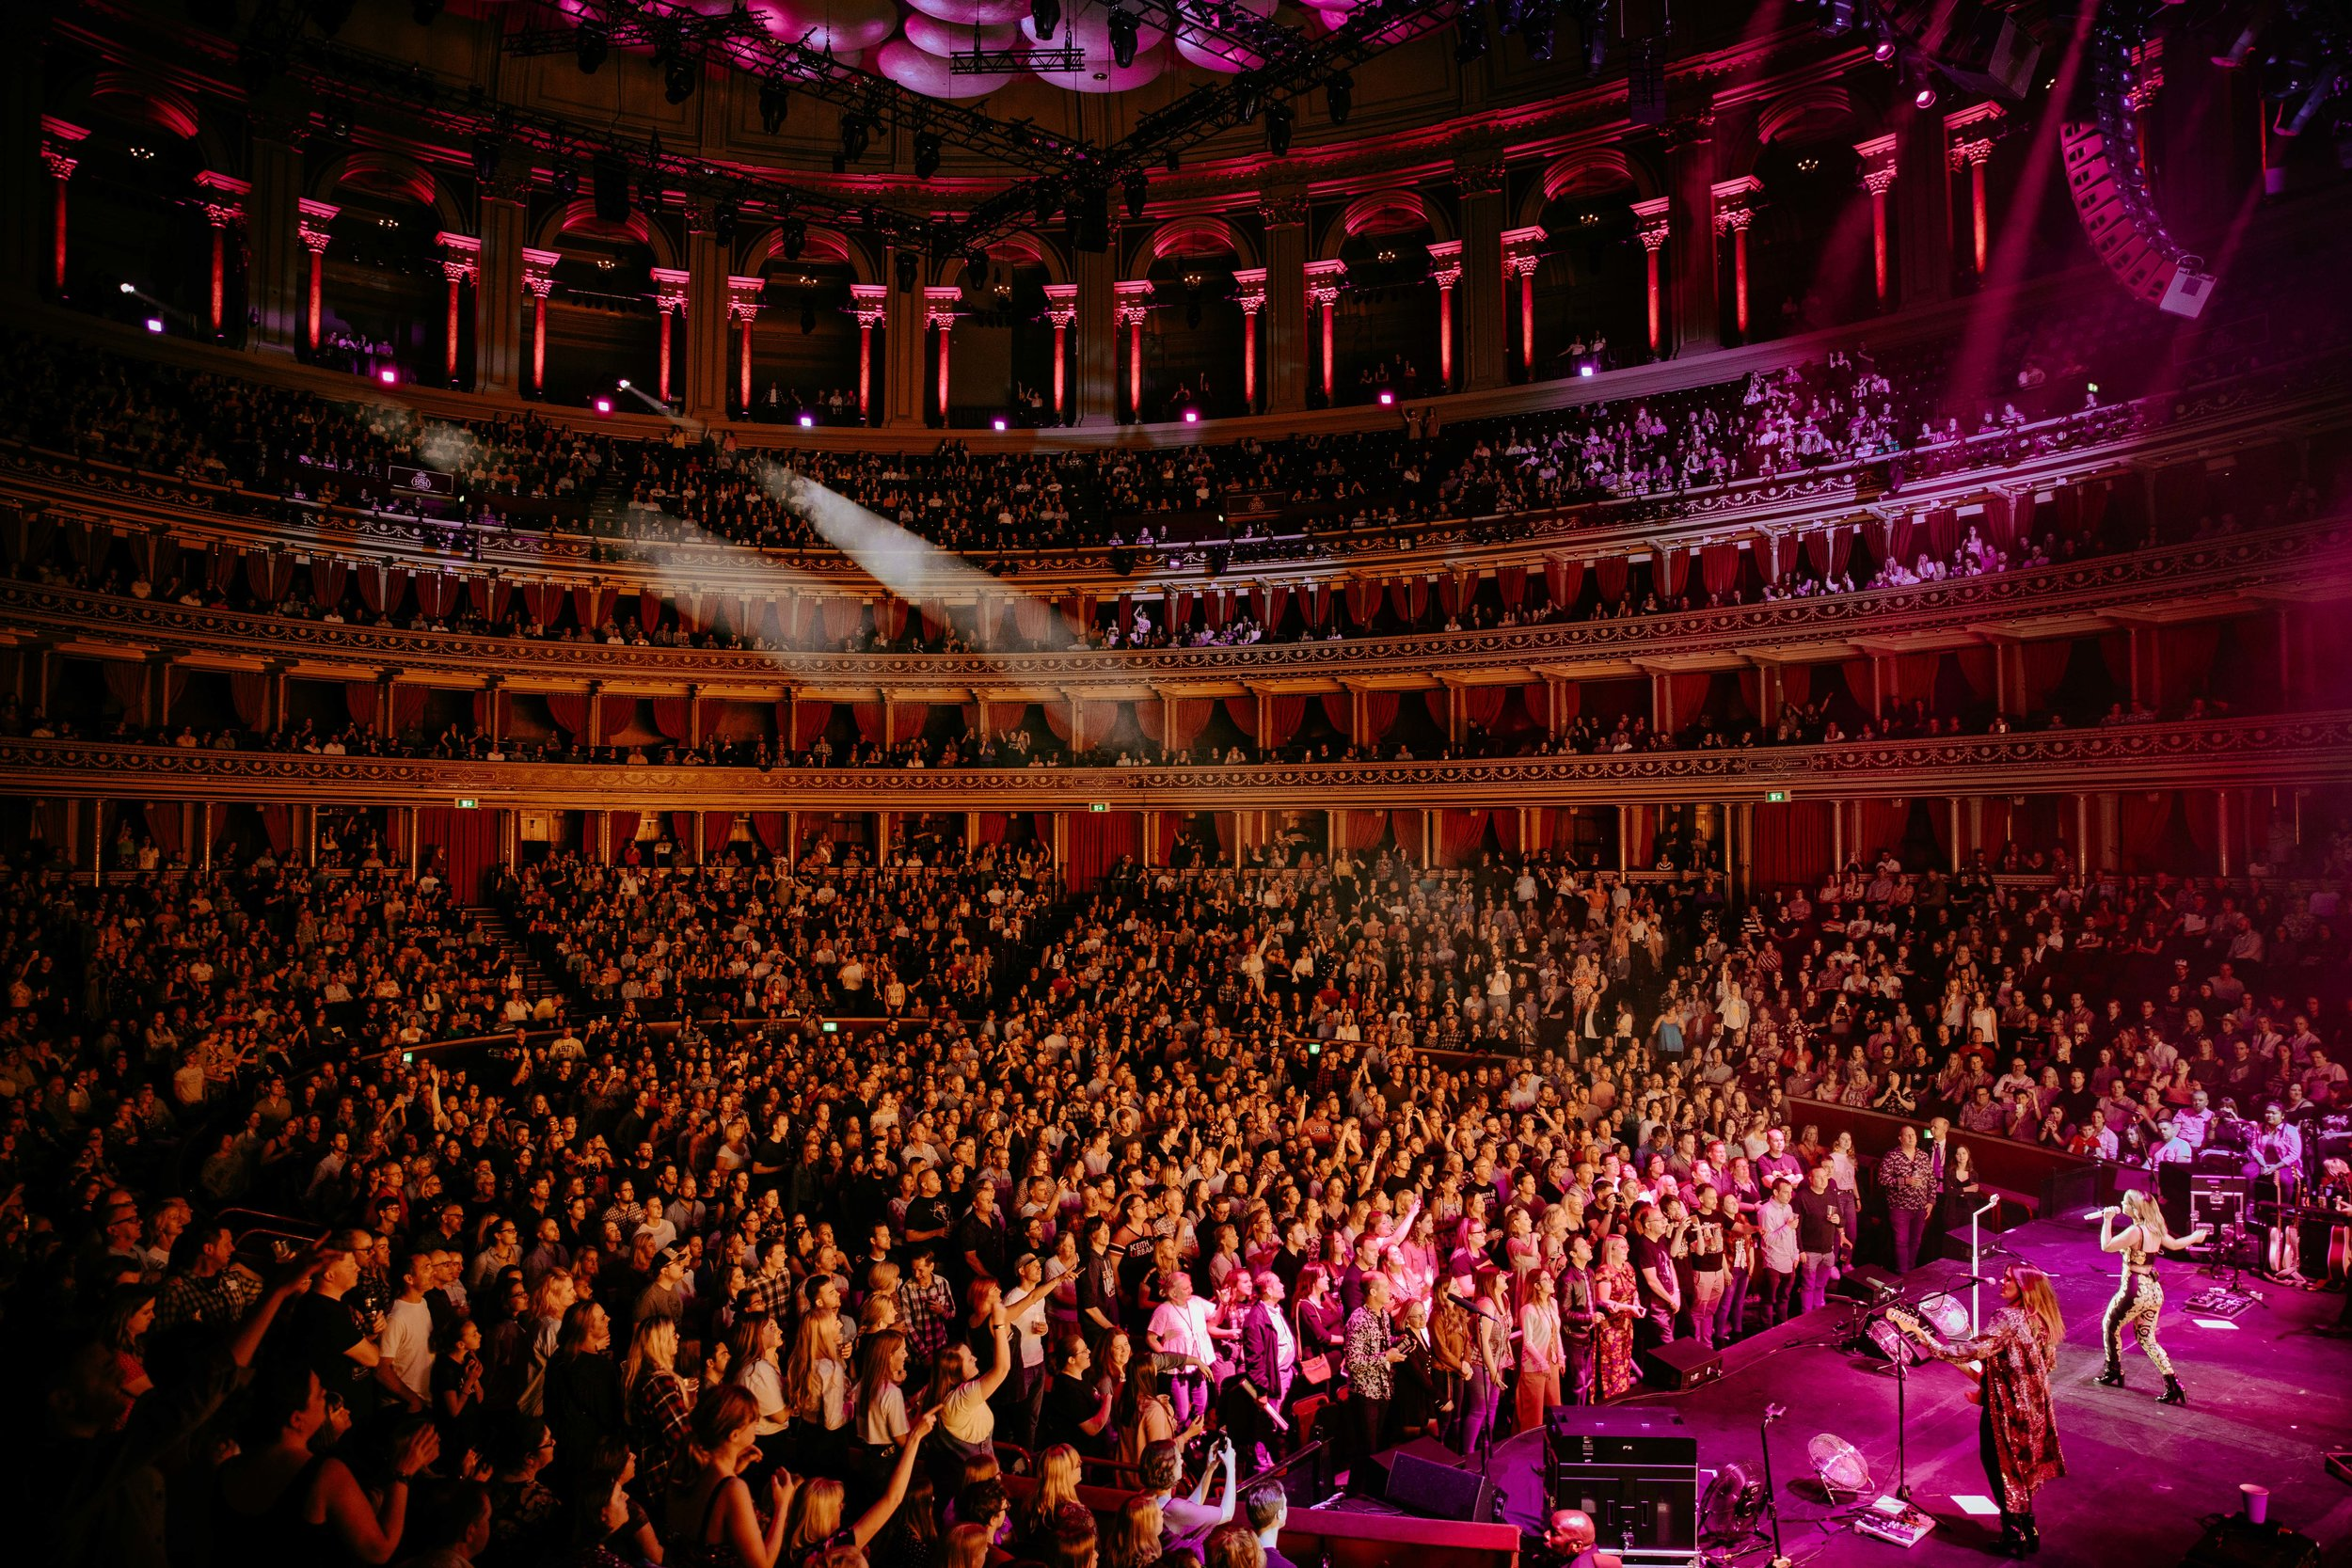 MM 053119 London, UK Royal Albert Hall By Christian Tierney-29.jpg